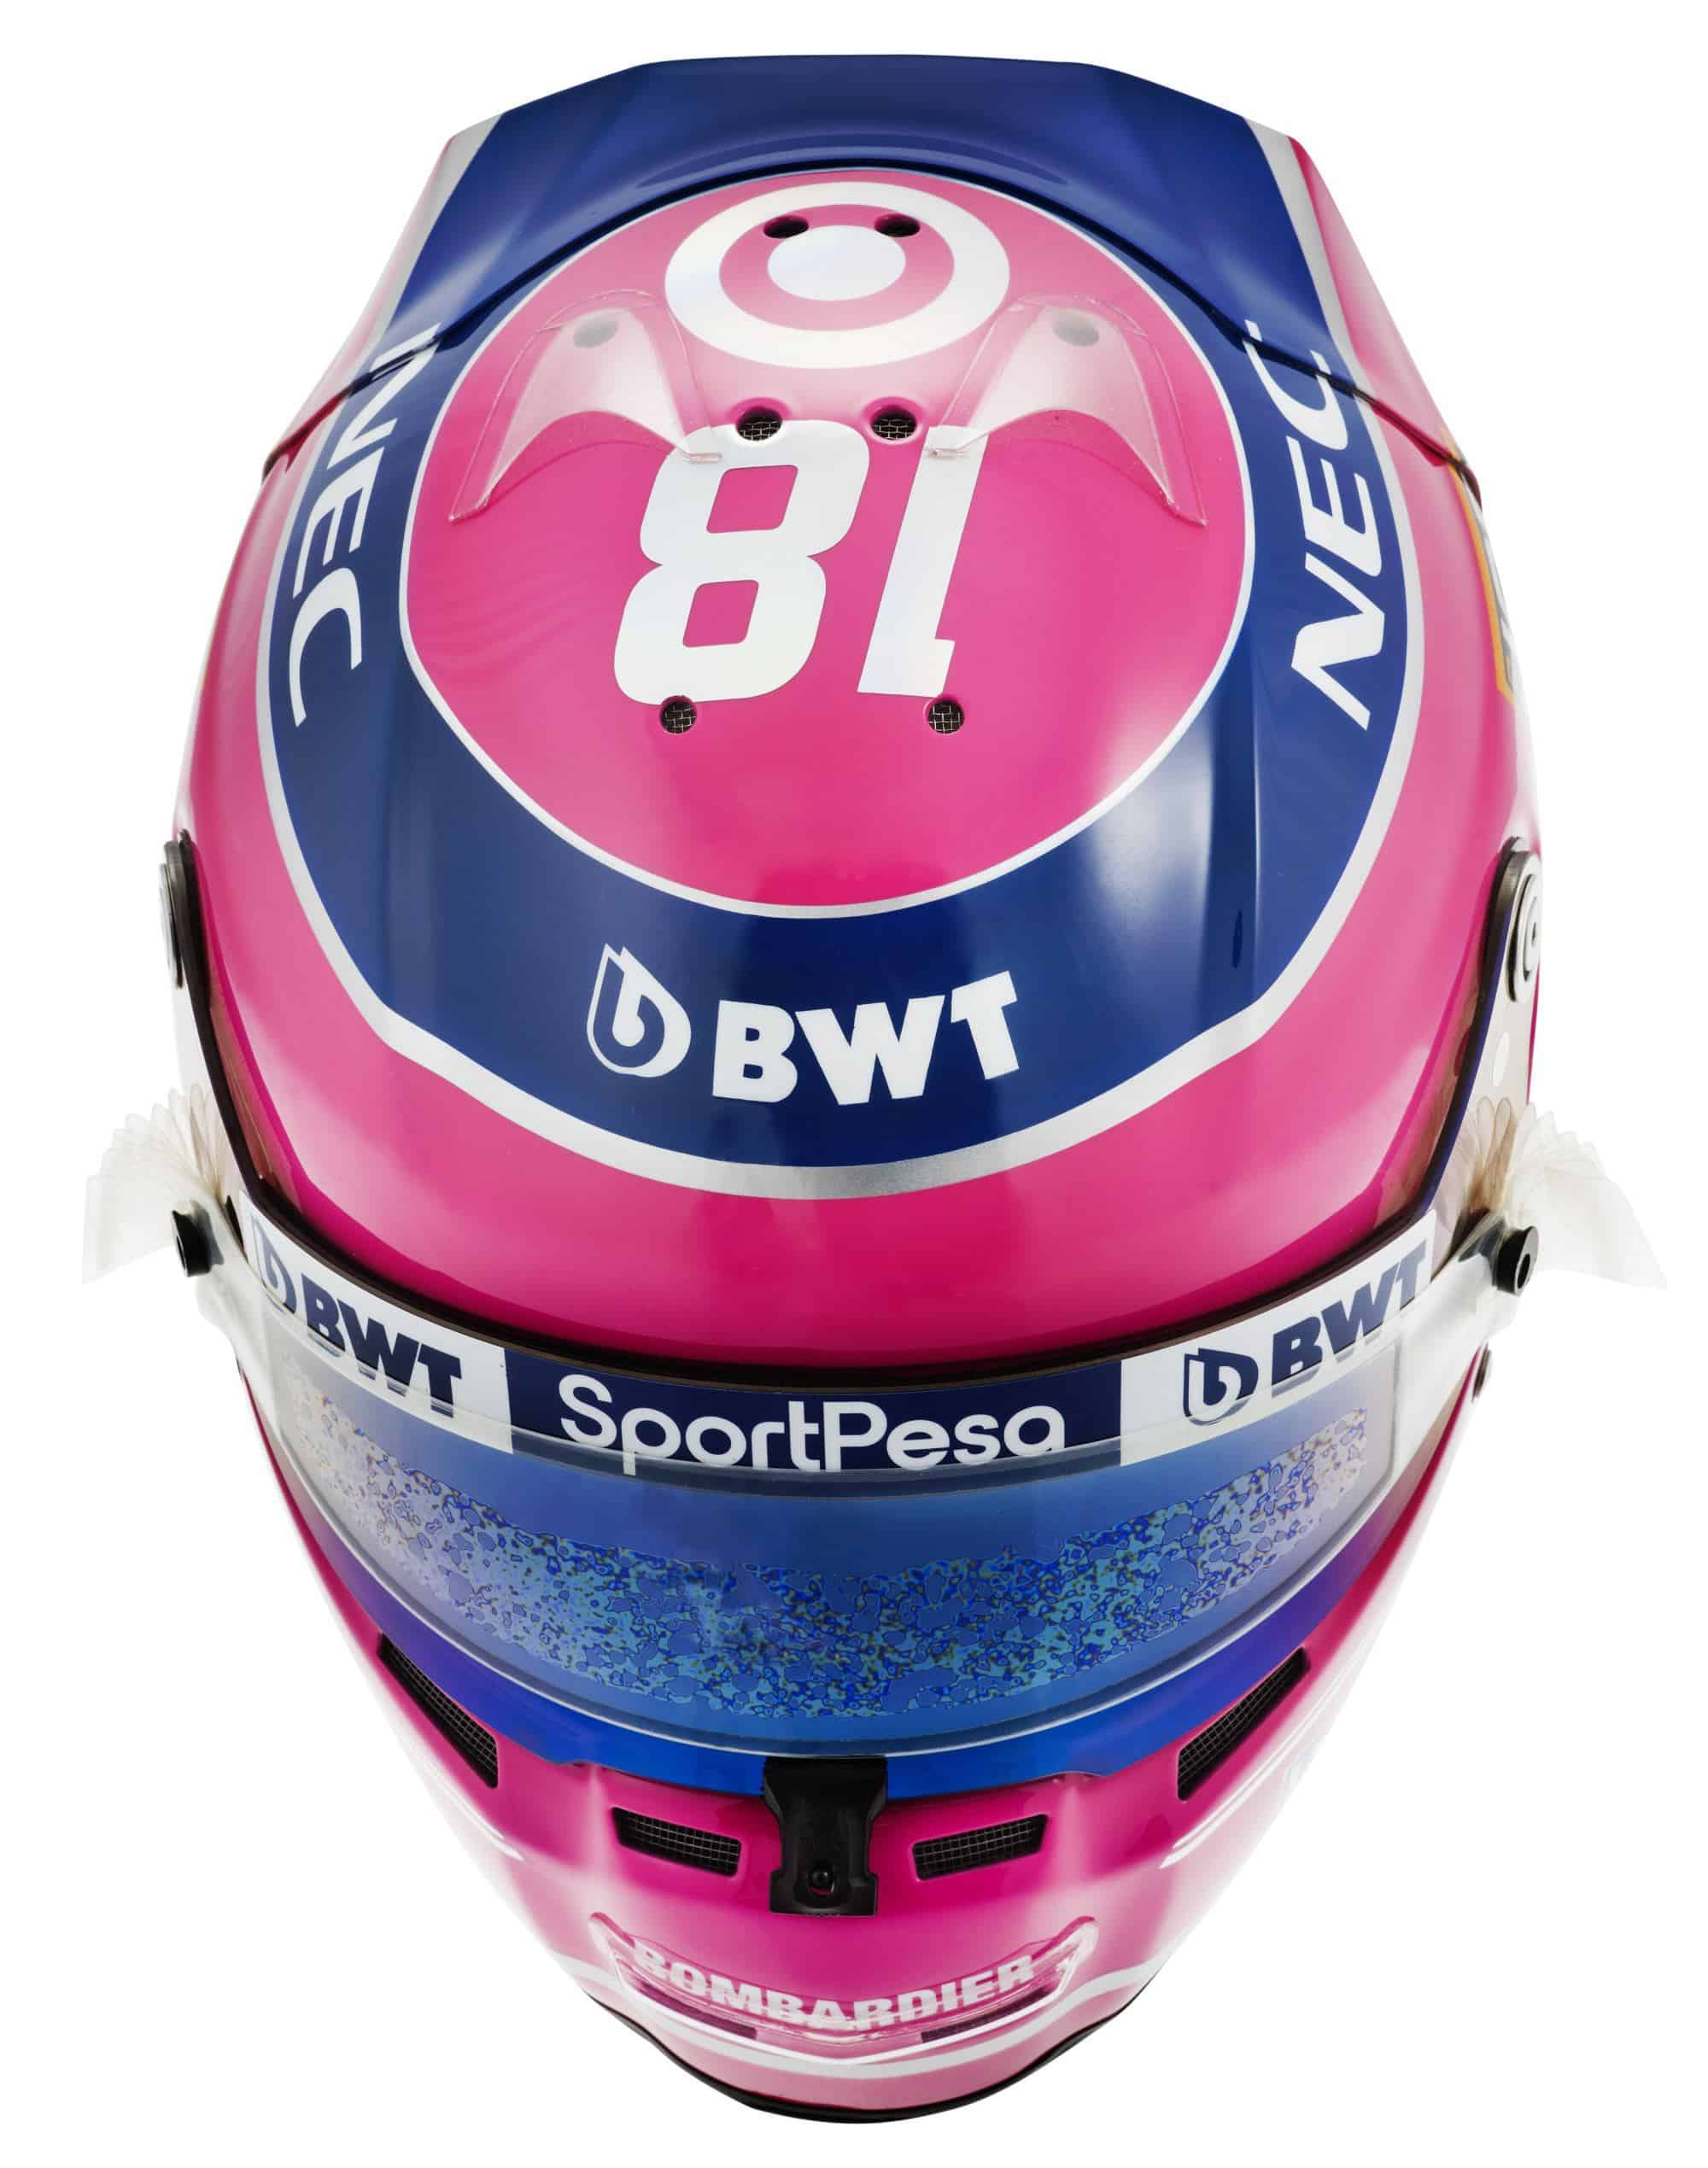 2019 Sport Pesa Racing Point Lance Stroll helmet top Photo Racing Point Edited by MAXF1net